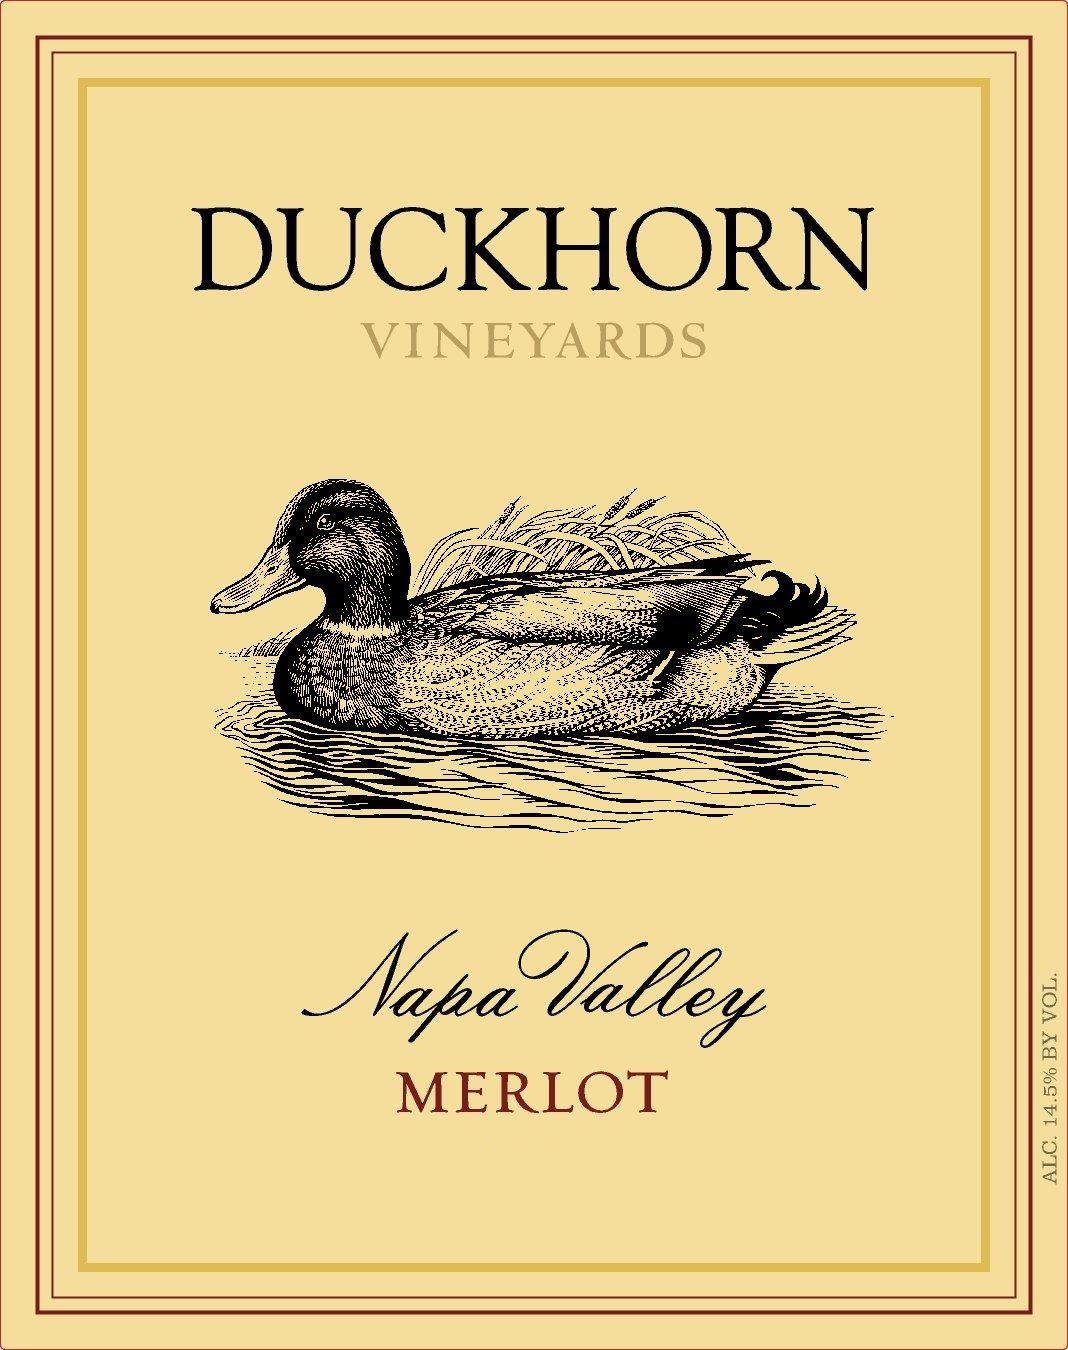 Duckhorn Napa Valley Merlot 2016 Front Label